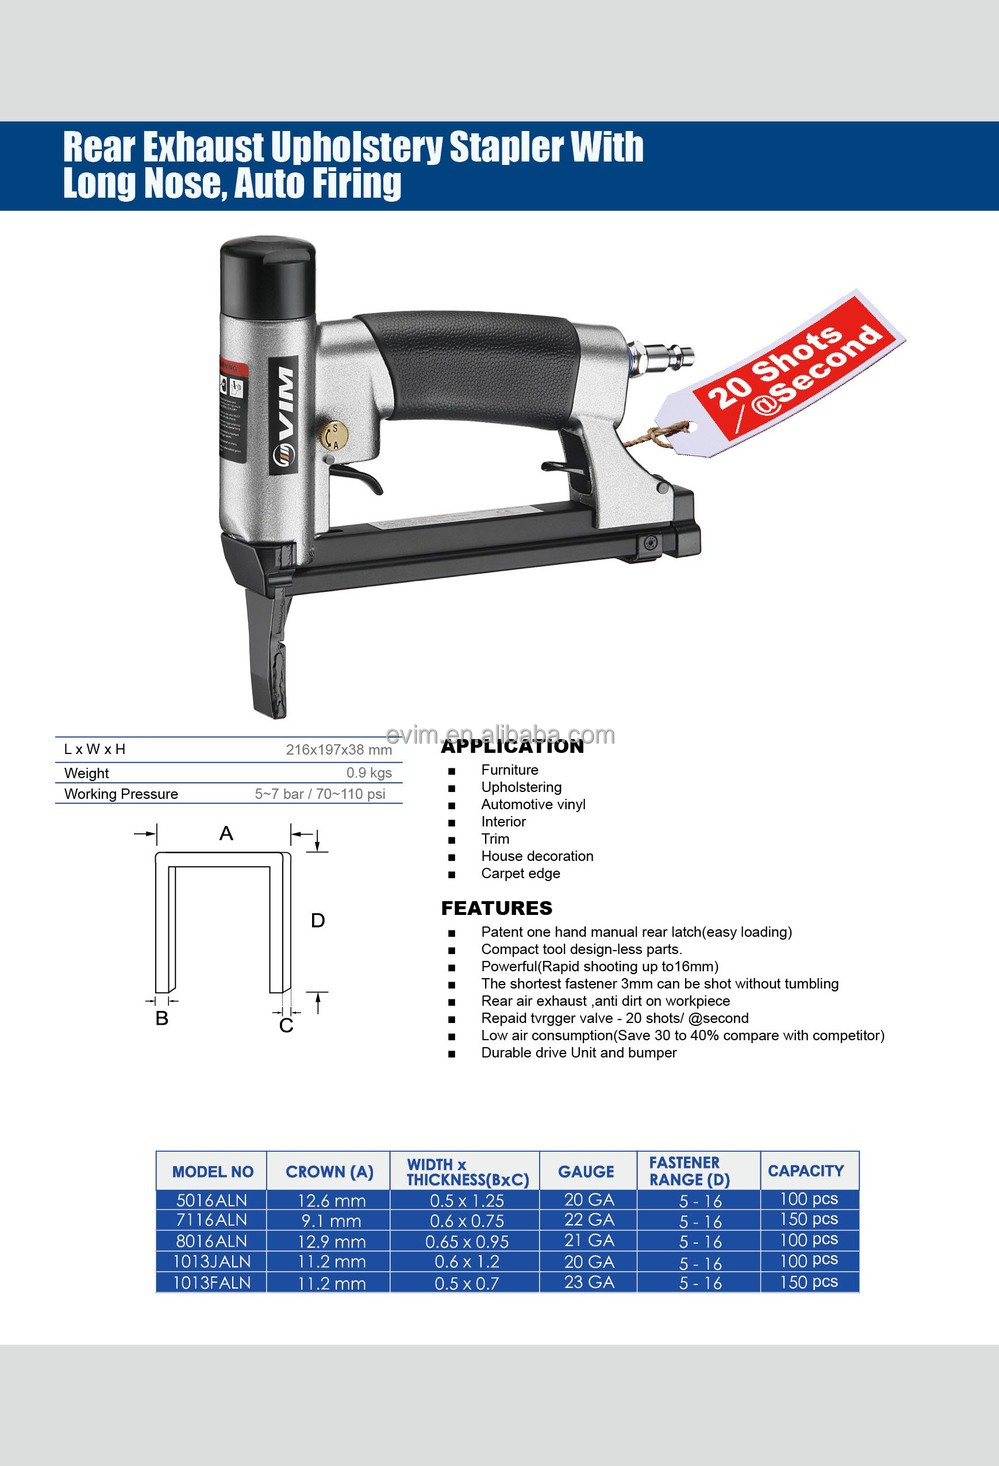 5016ALN 20 Gauge Rear Exhaust Upholstery Stapler with Long Nose, Auto Firing